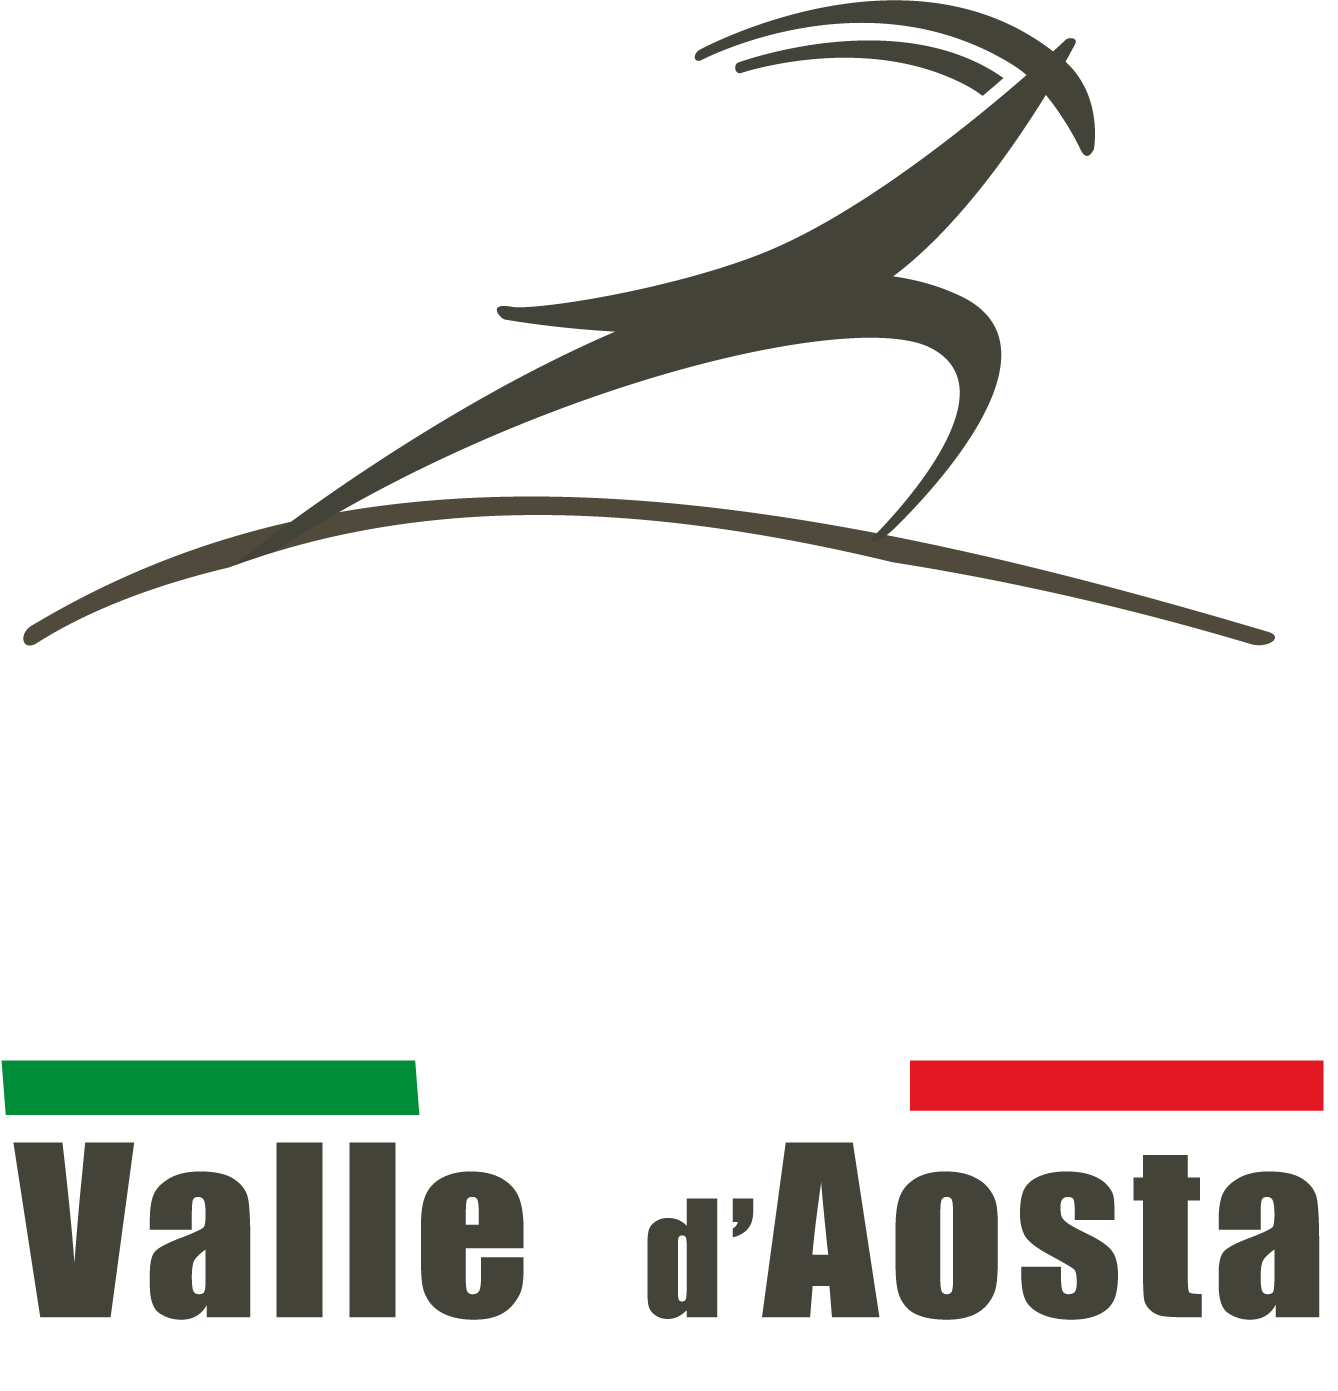 LOGO World Ski Cross country cup 2019 Cogne Valle d'aosta